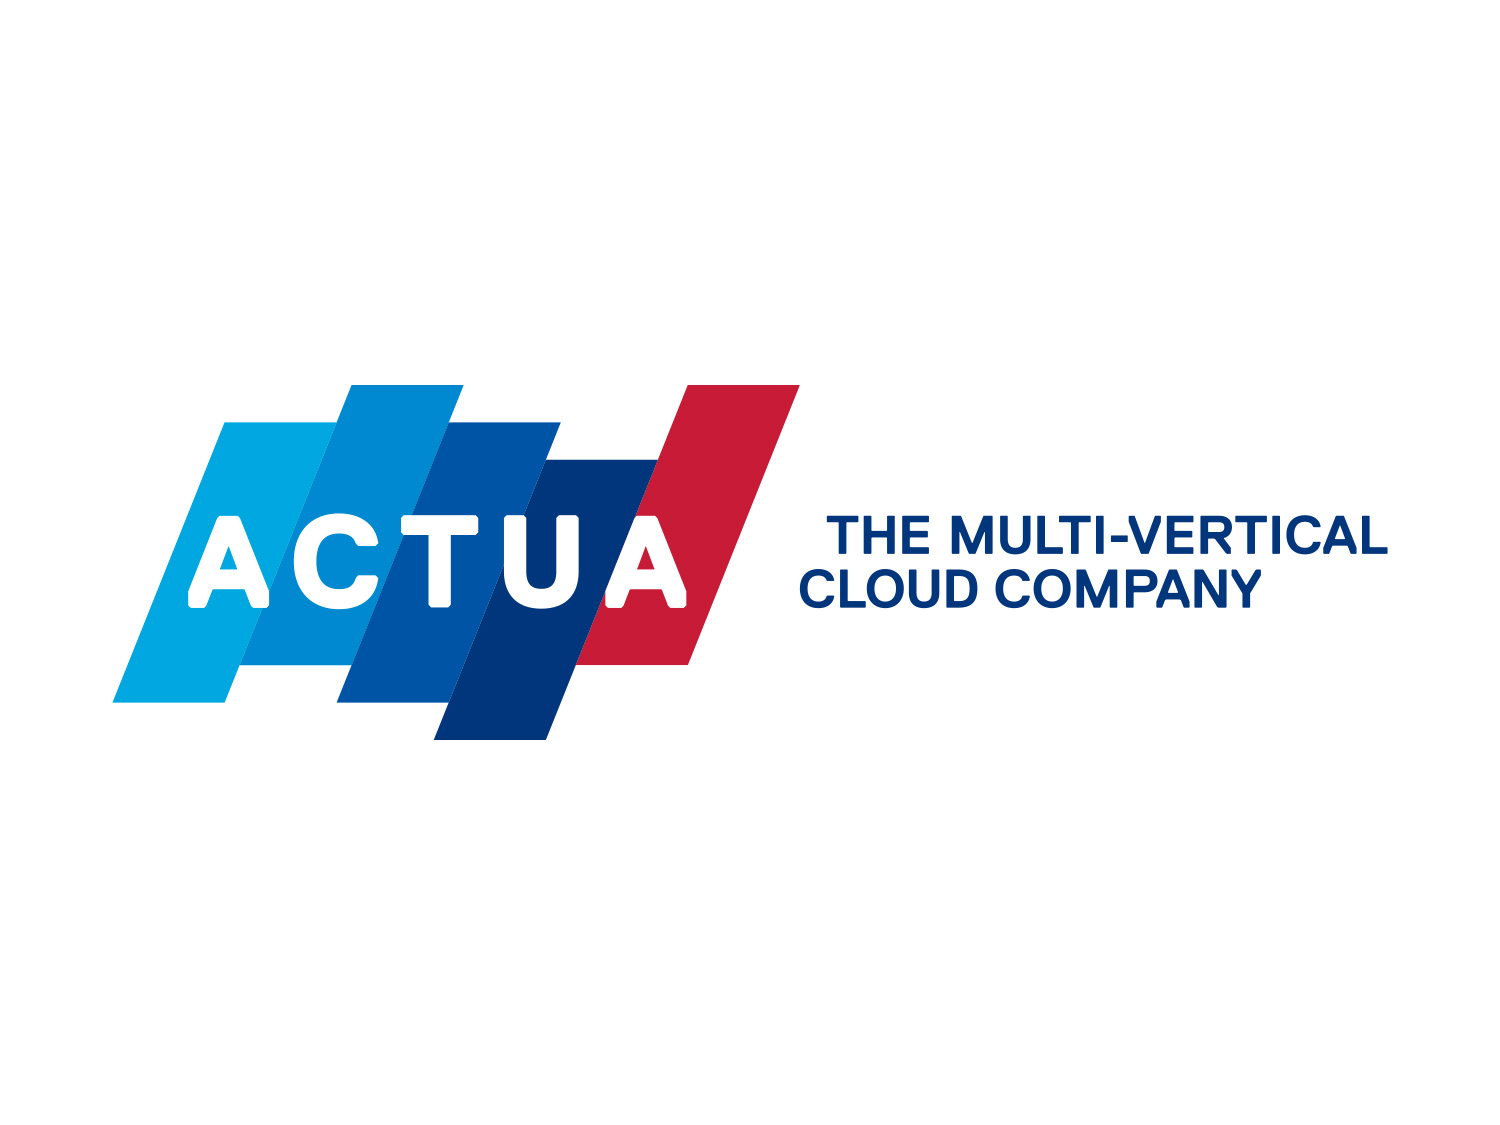 Actua logo and tagline